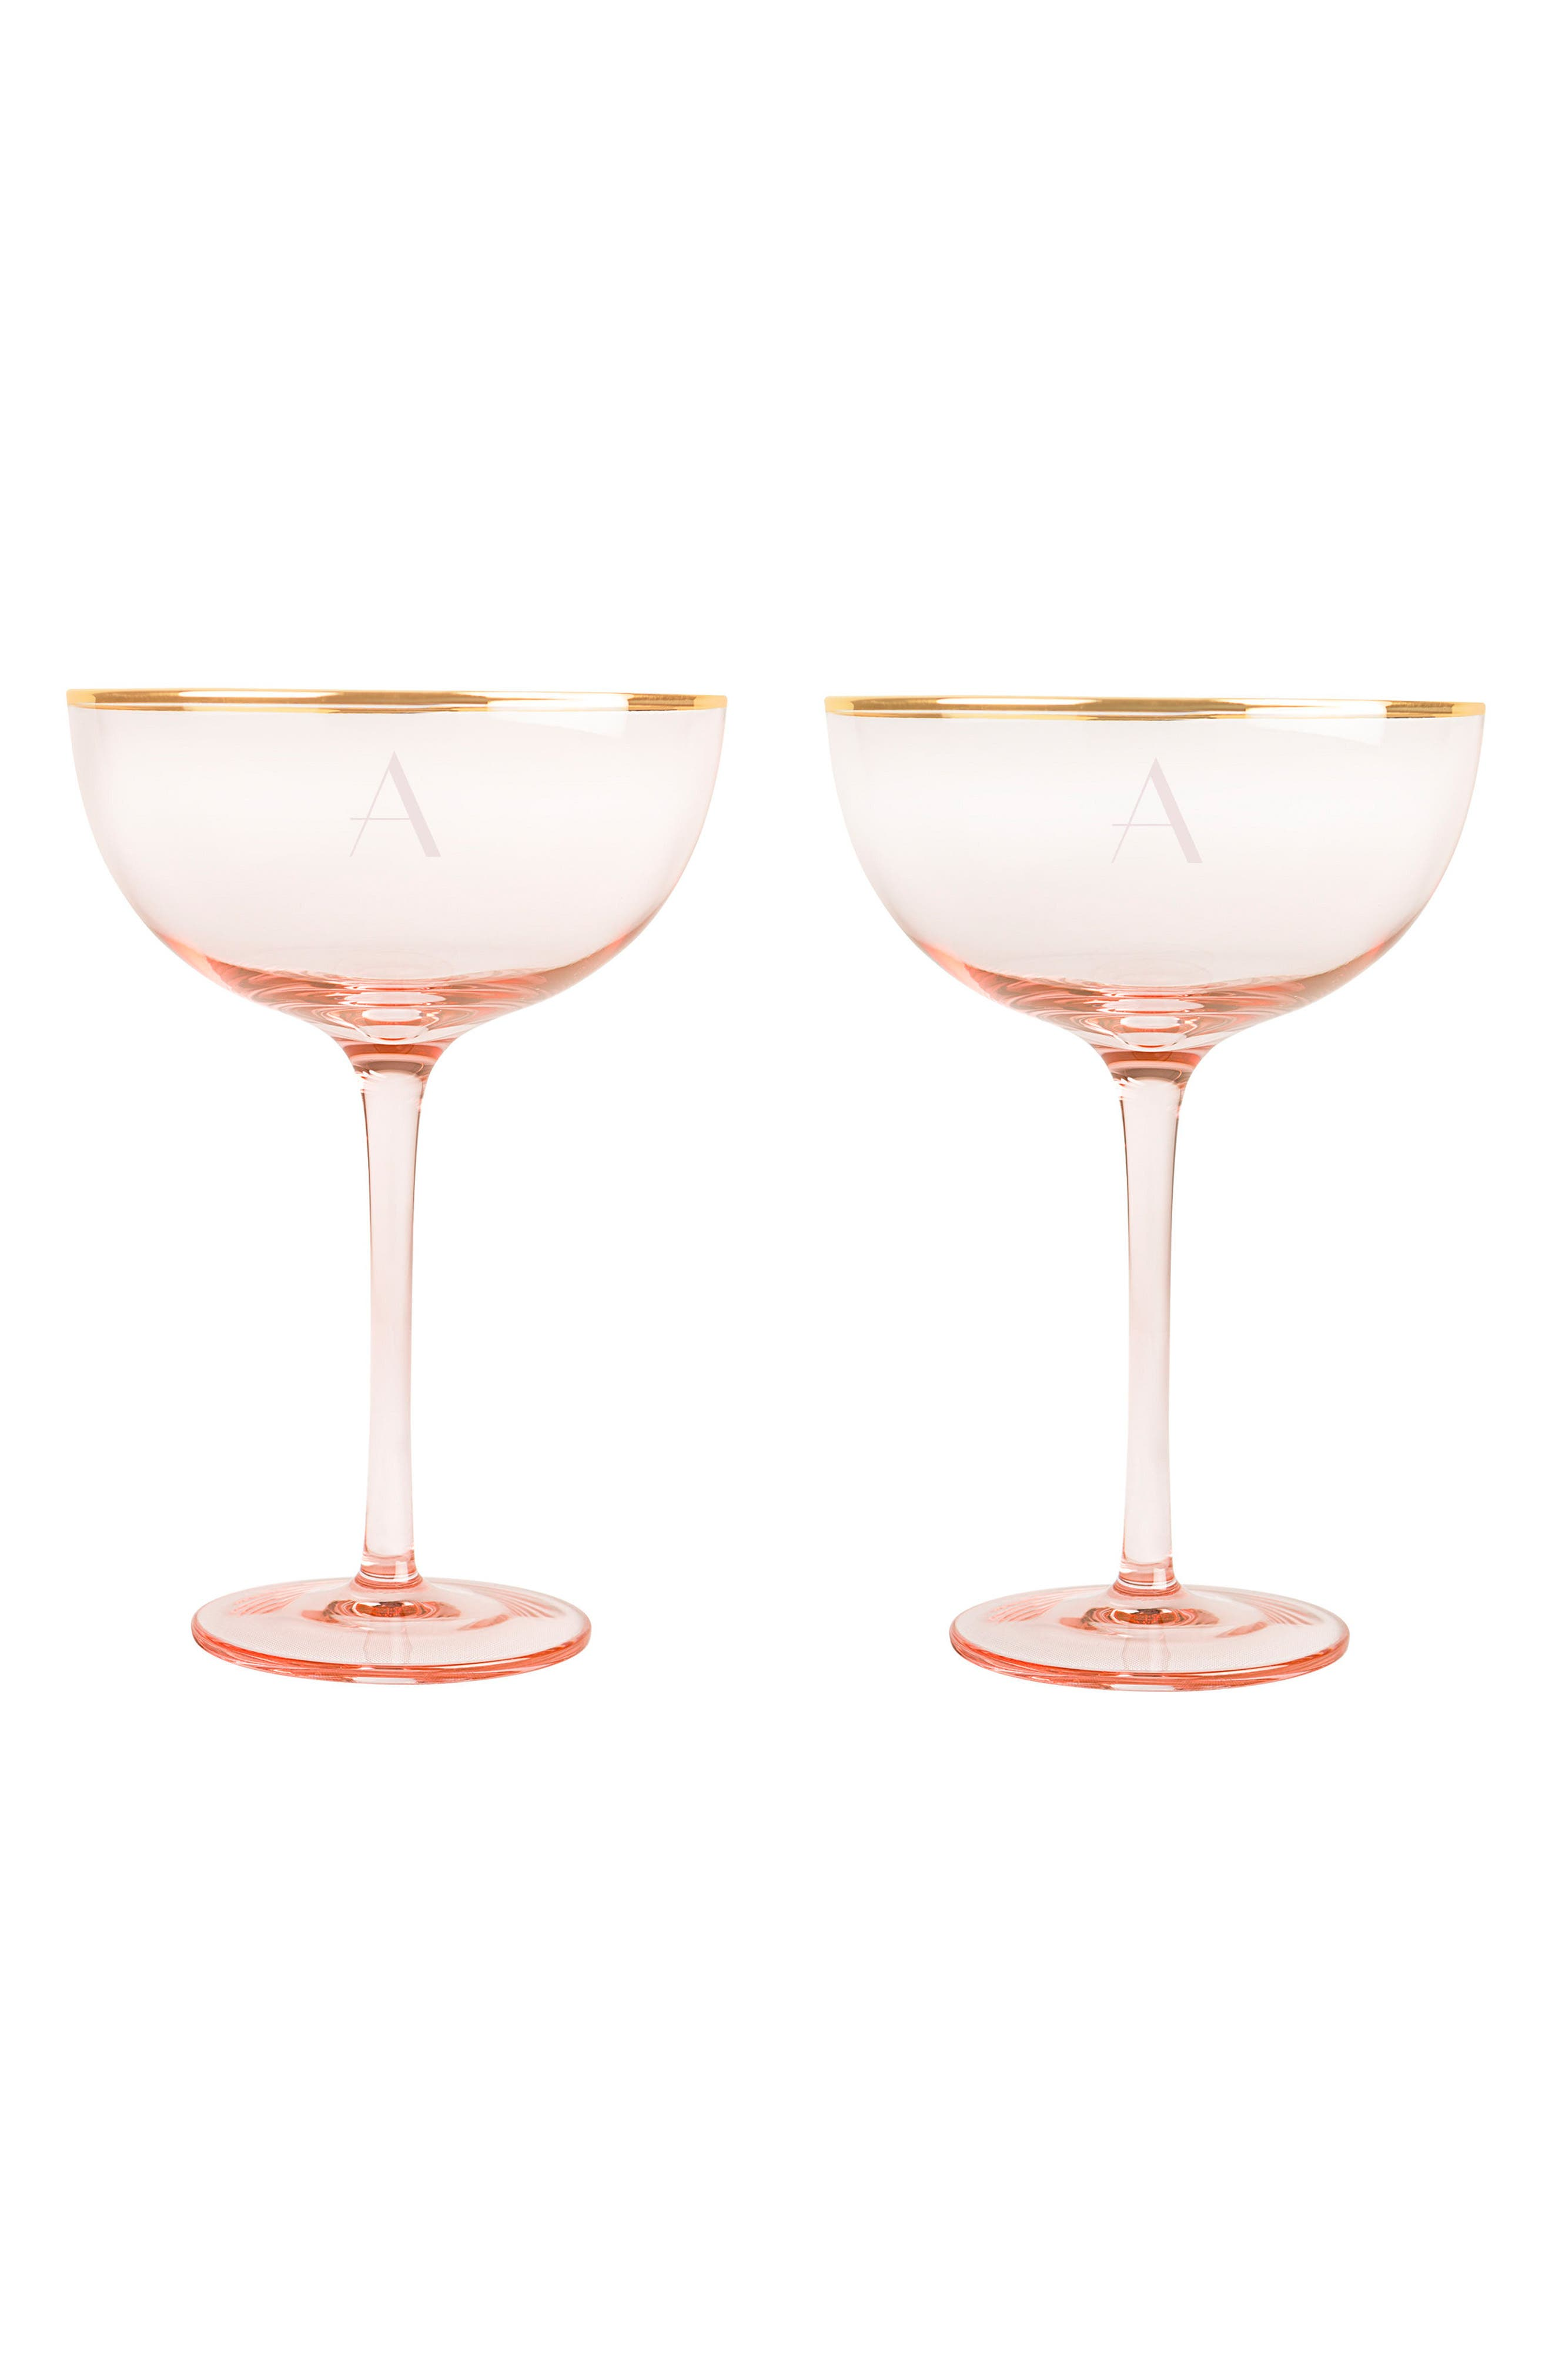 Cathy's Concepts Monogram Set of 2 Champagne Coupes